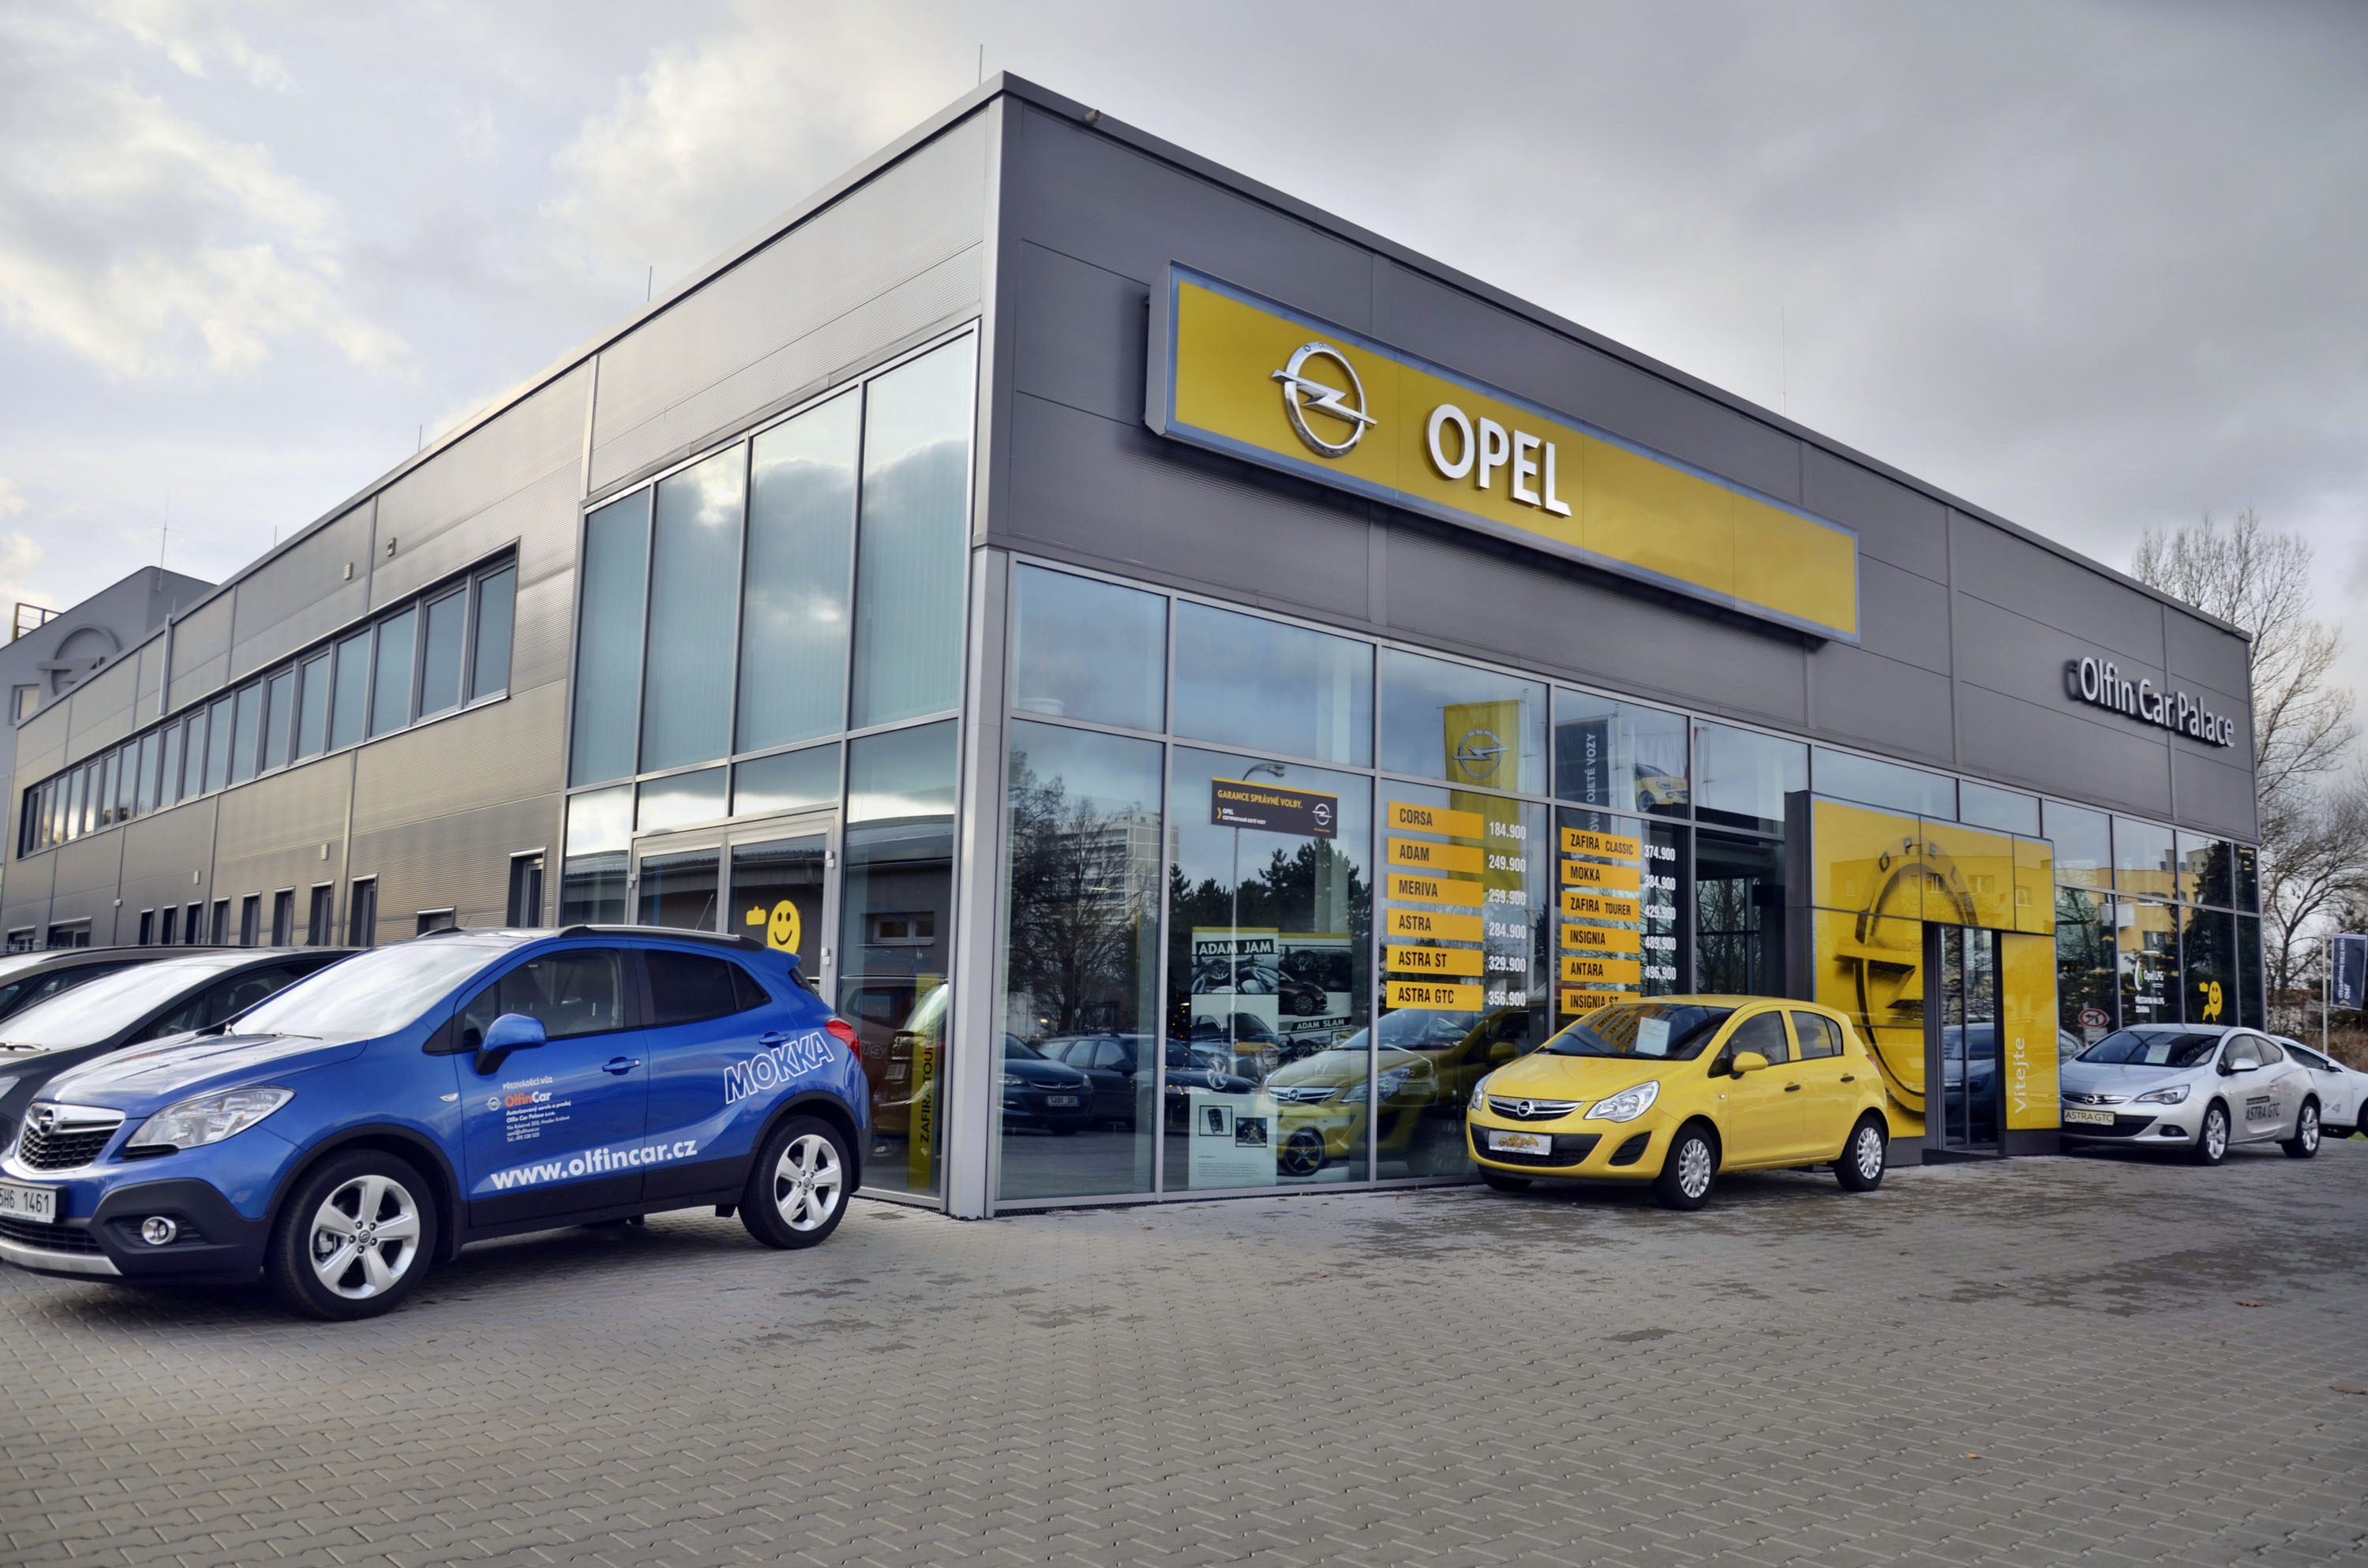 Opel Olfin Car Palace